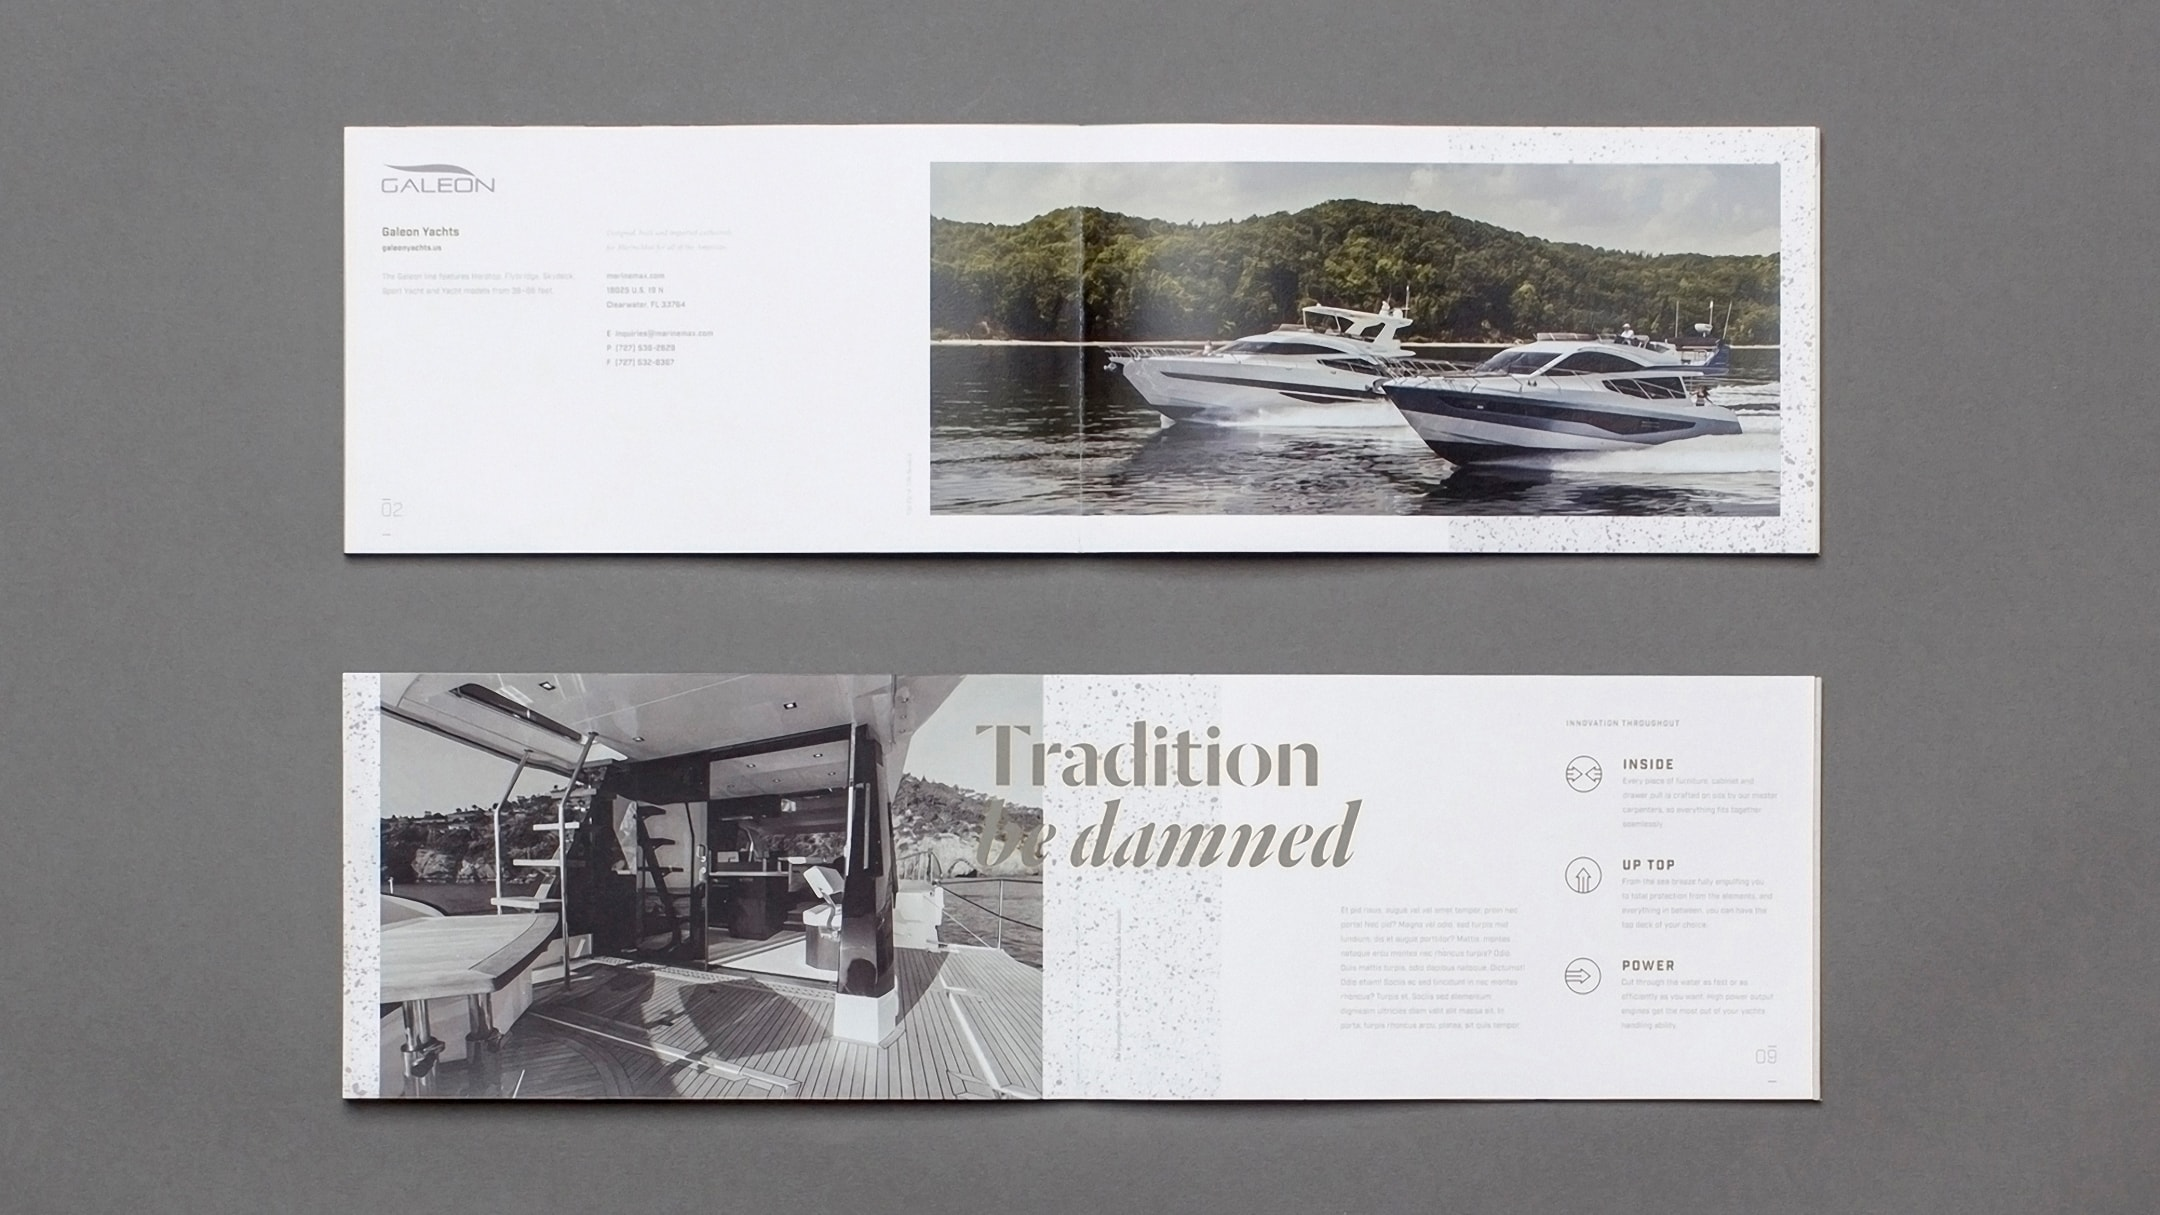 Galeon Yachts brand book created for their break the mold yacht campaign.